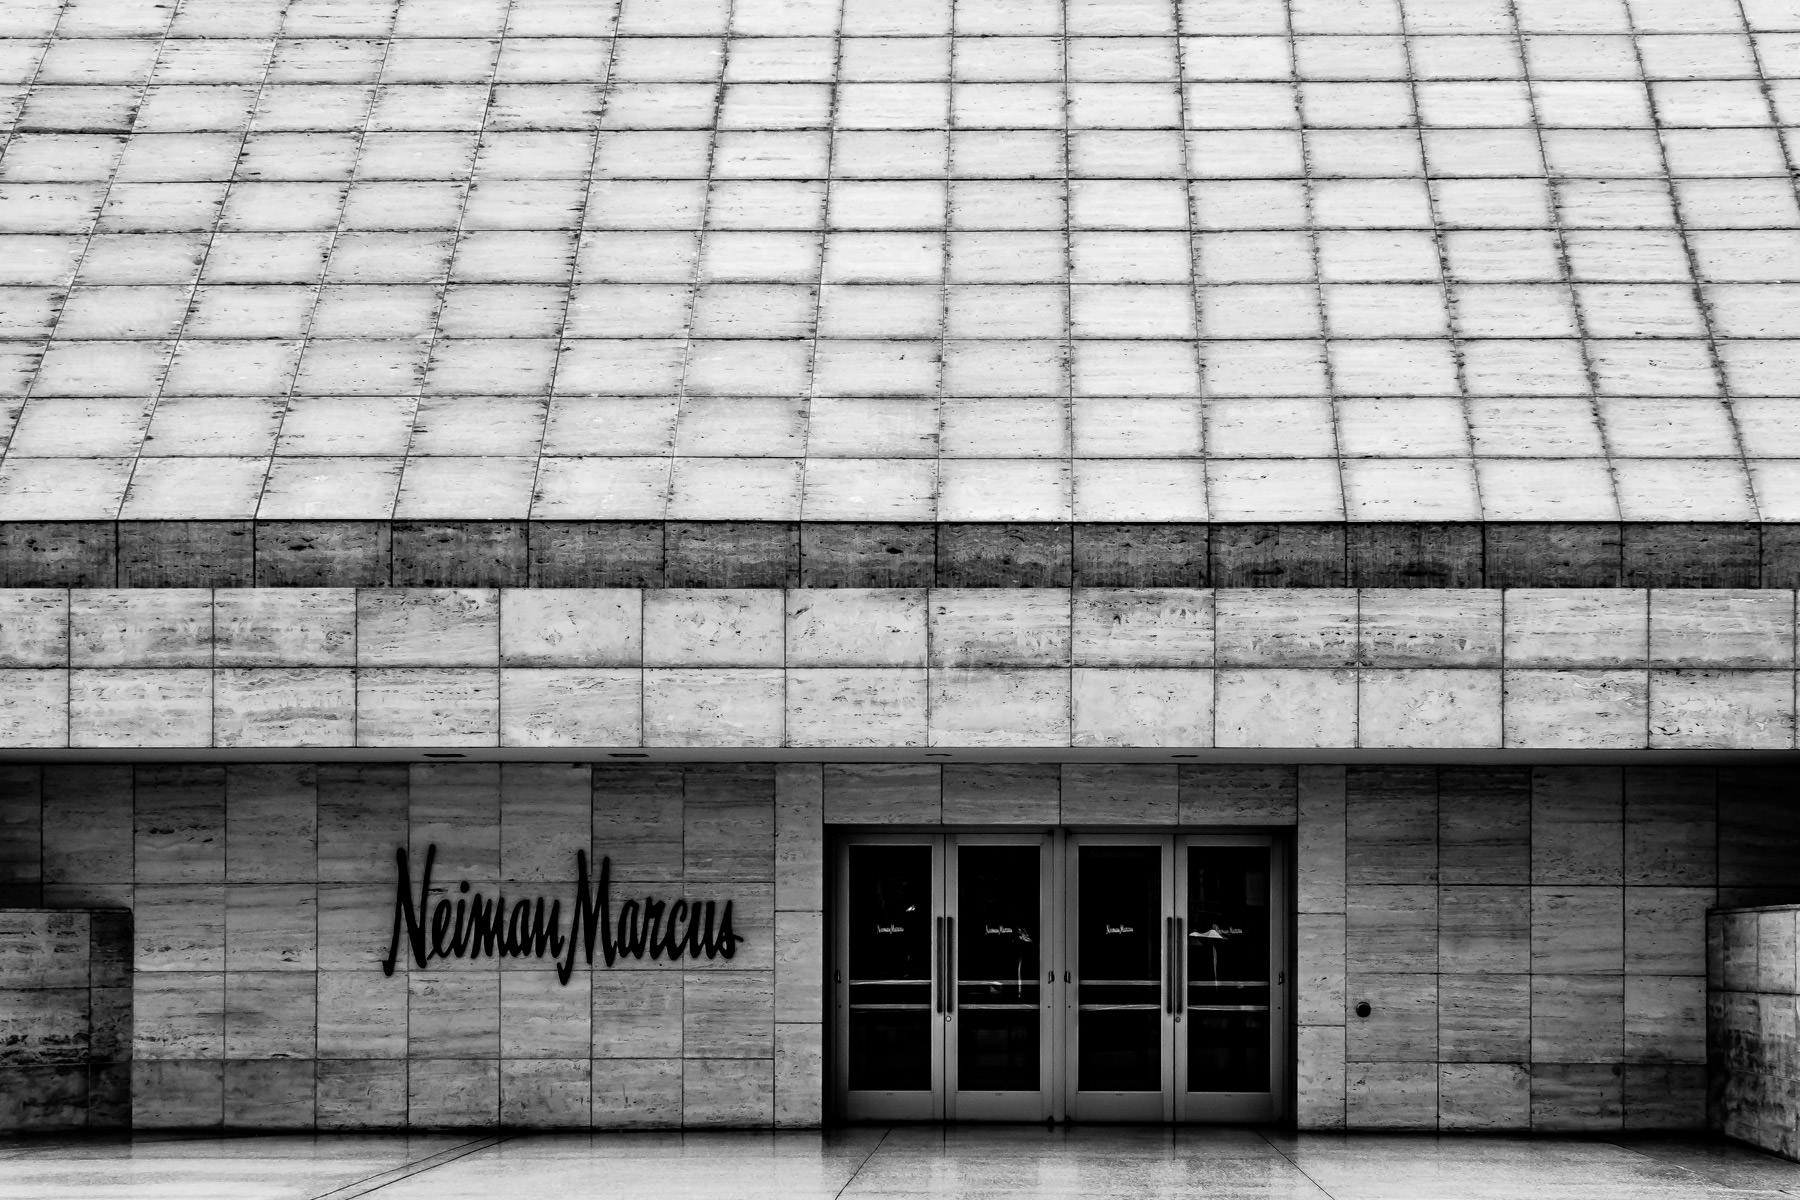 The Neiman Marcus department store at Las Vegas' Fashion Show Mall.